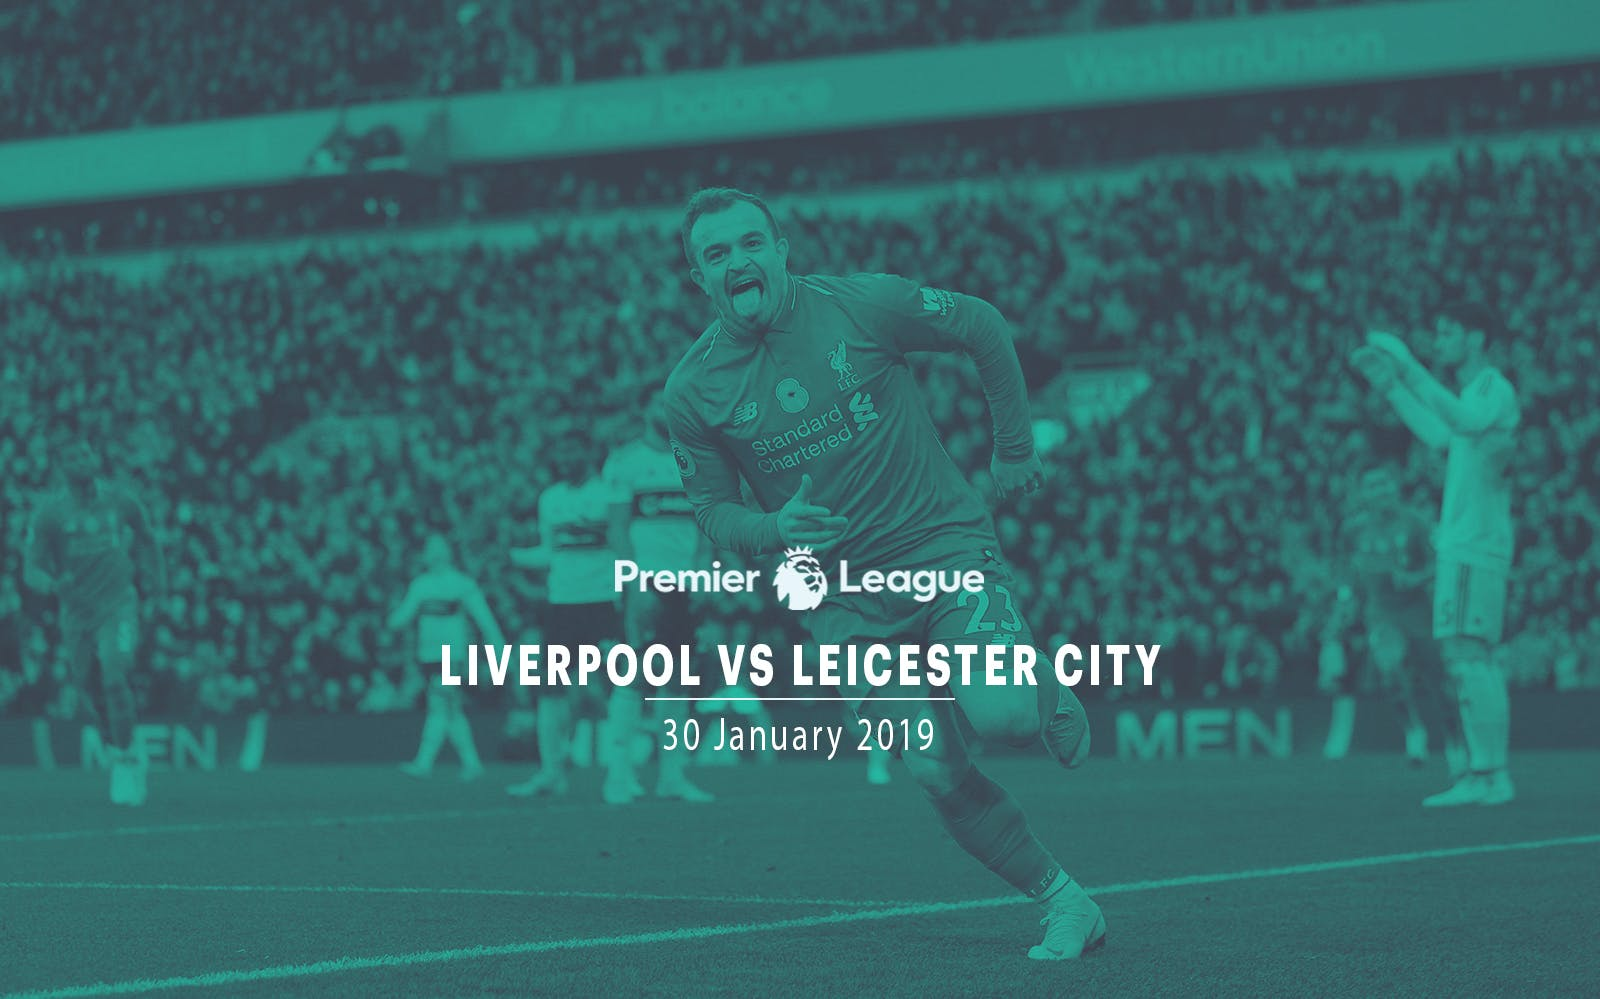 liverpool vs leicester city - 30th jan '19-1